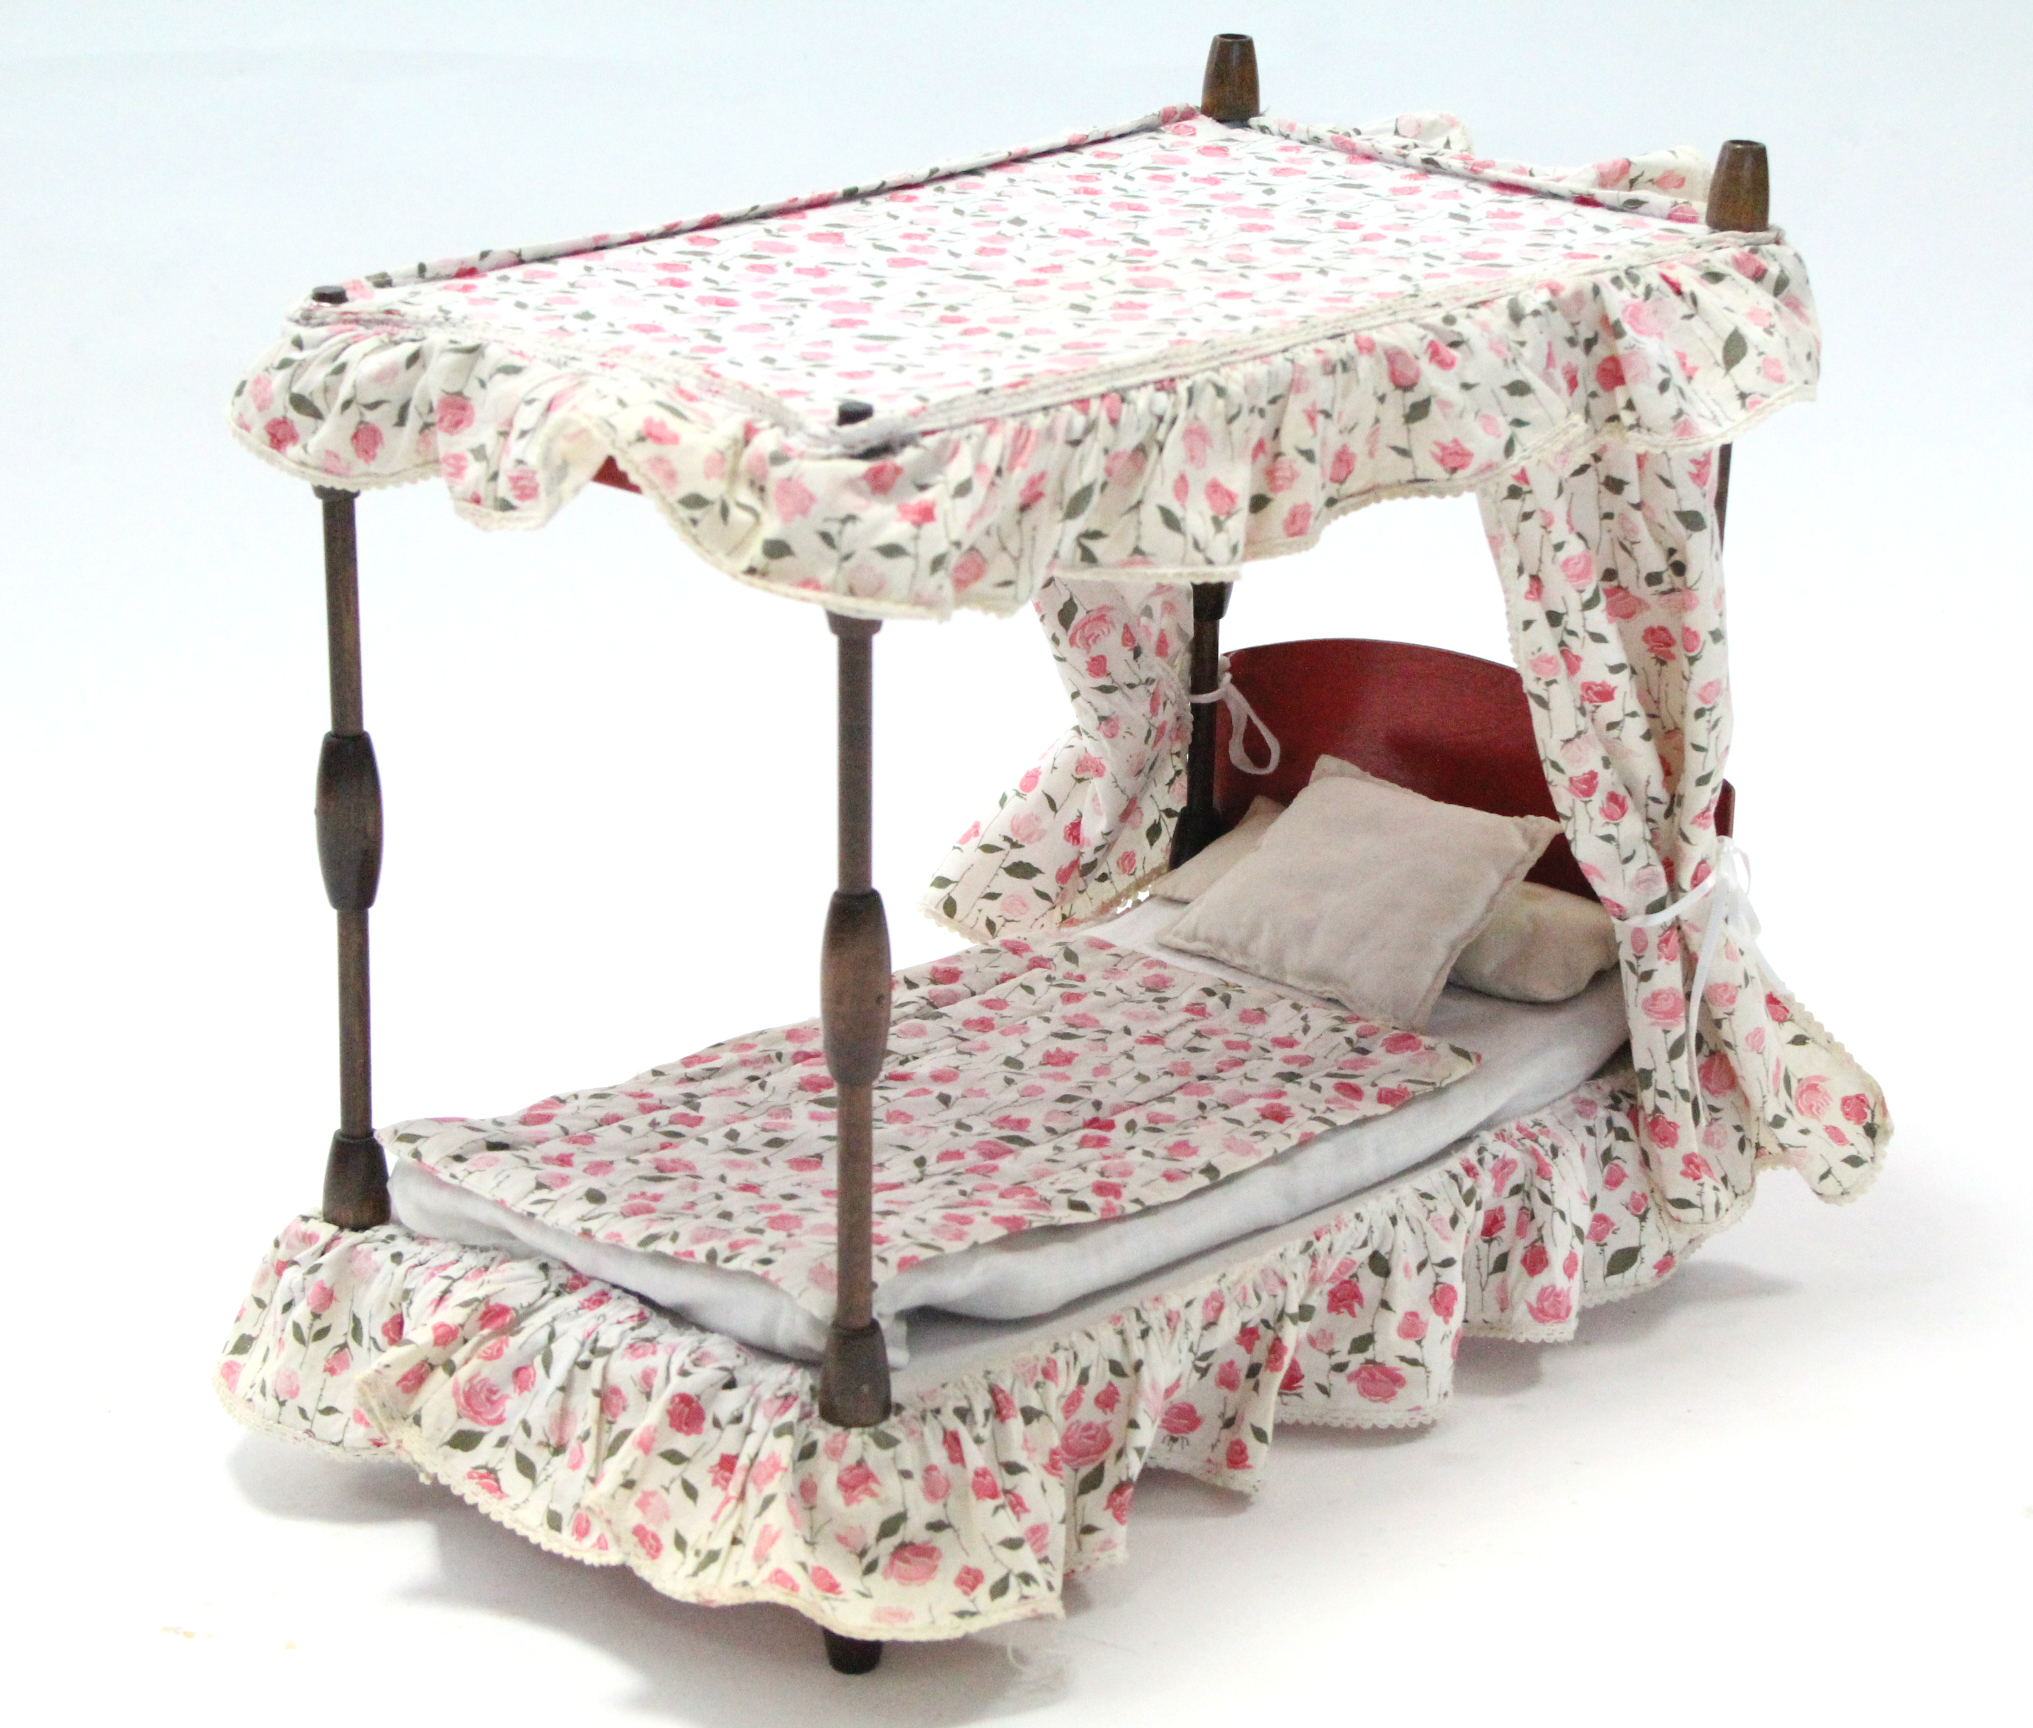 Lot 329 - A doll's four-poster bed, complete with bedding & drapes; together with a two-tier ash wall